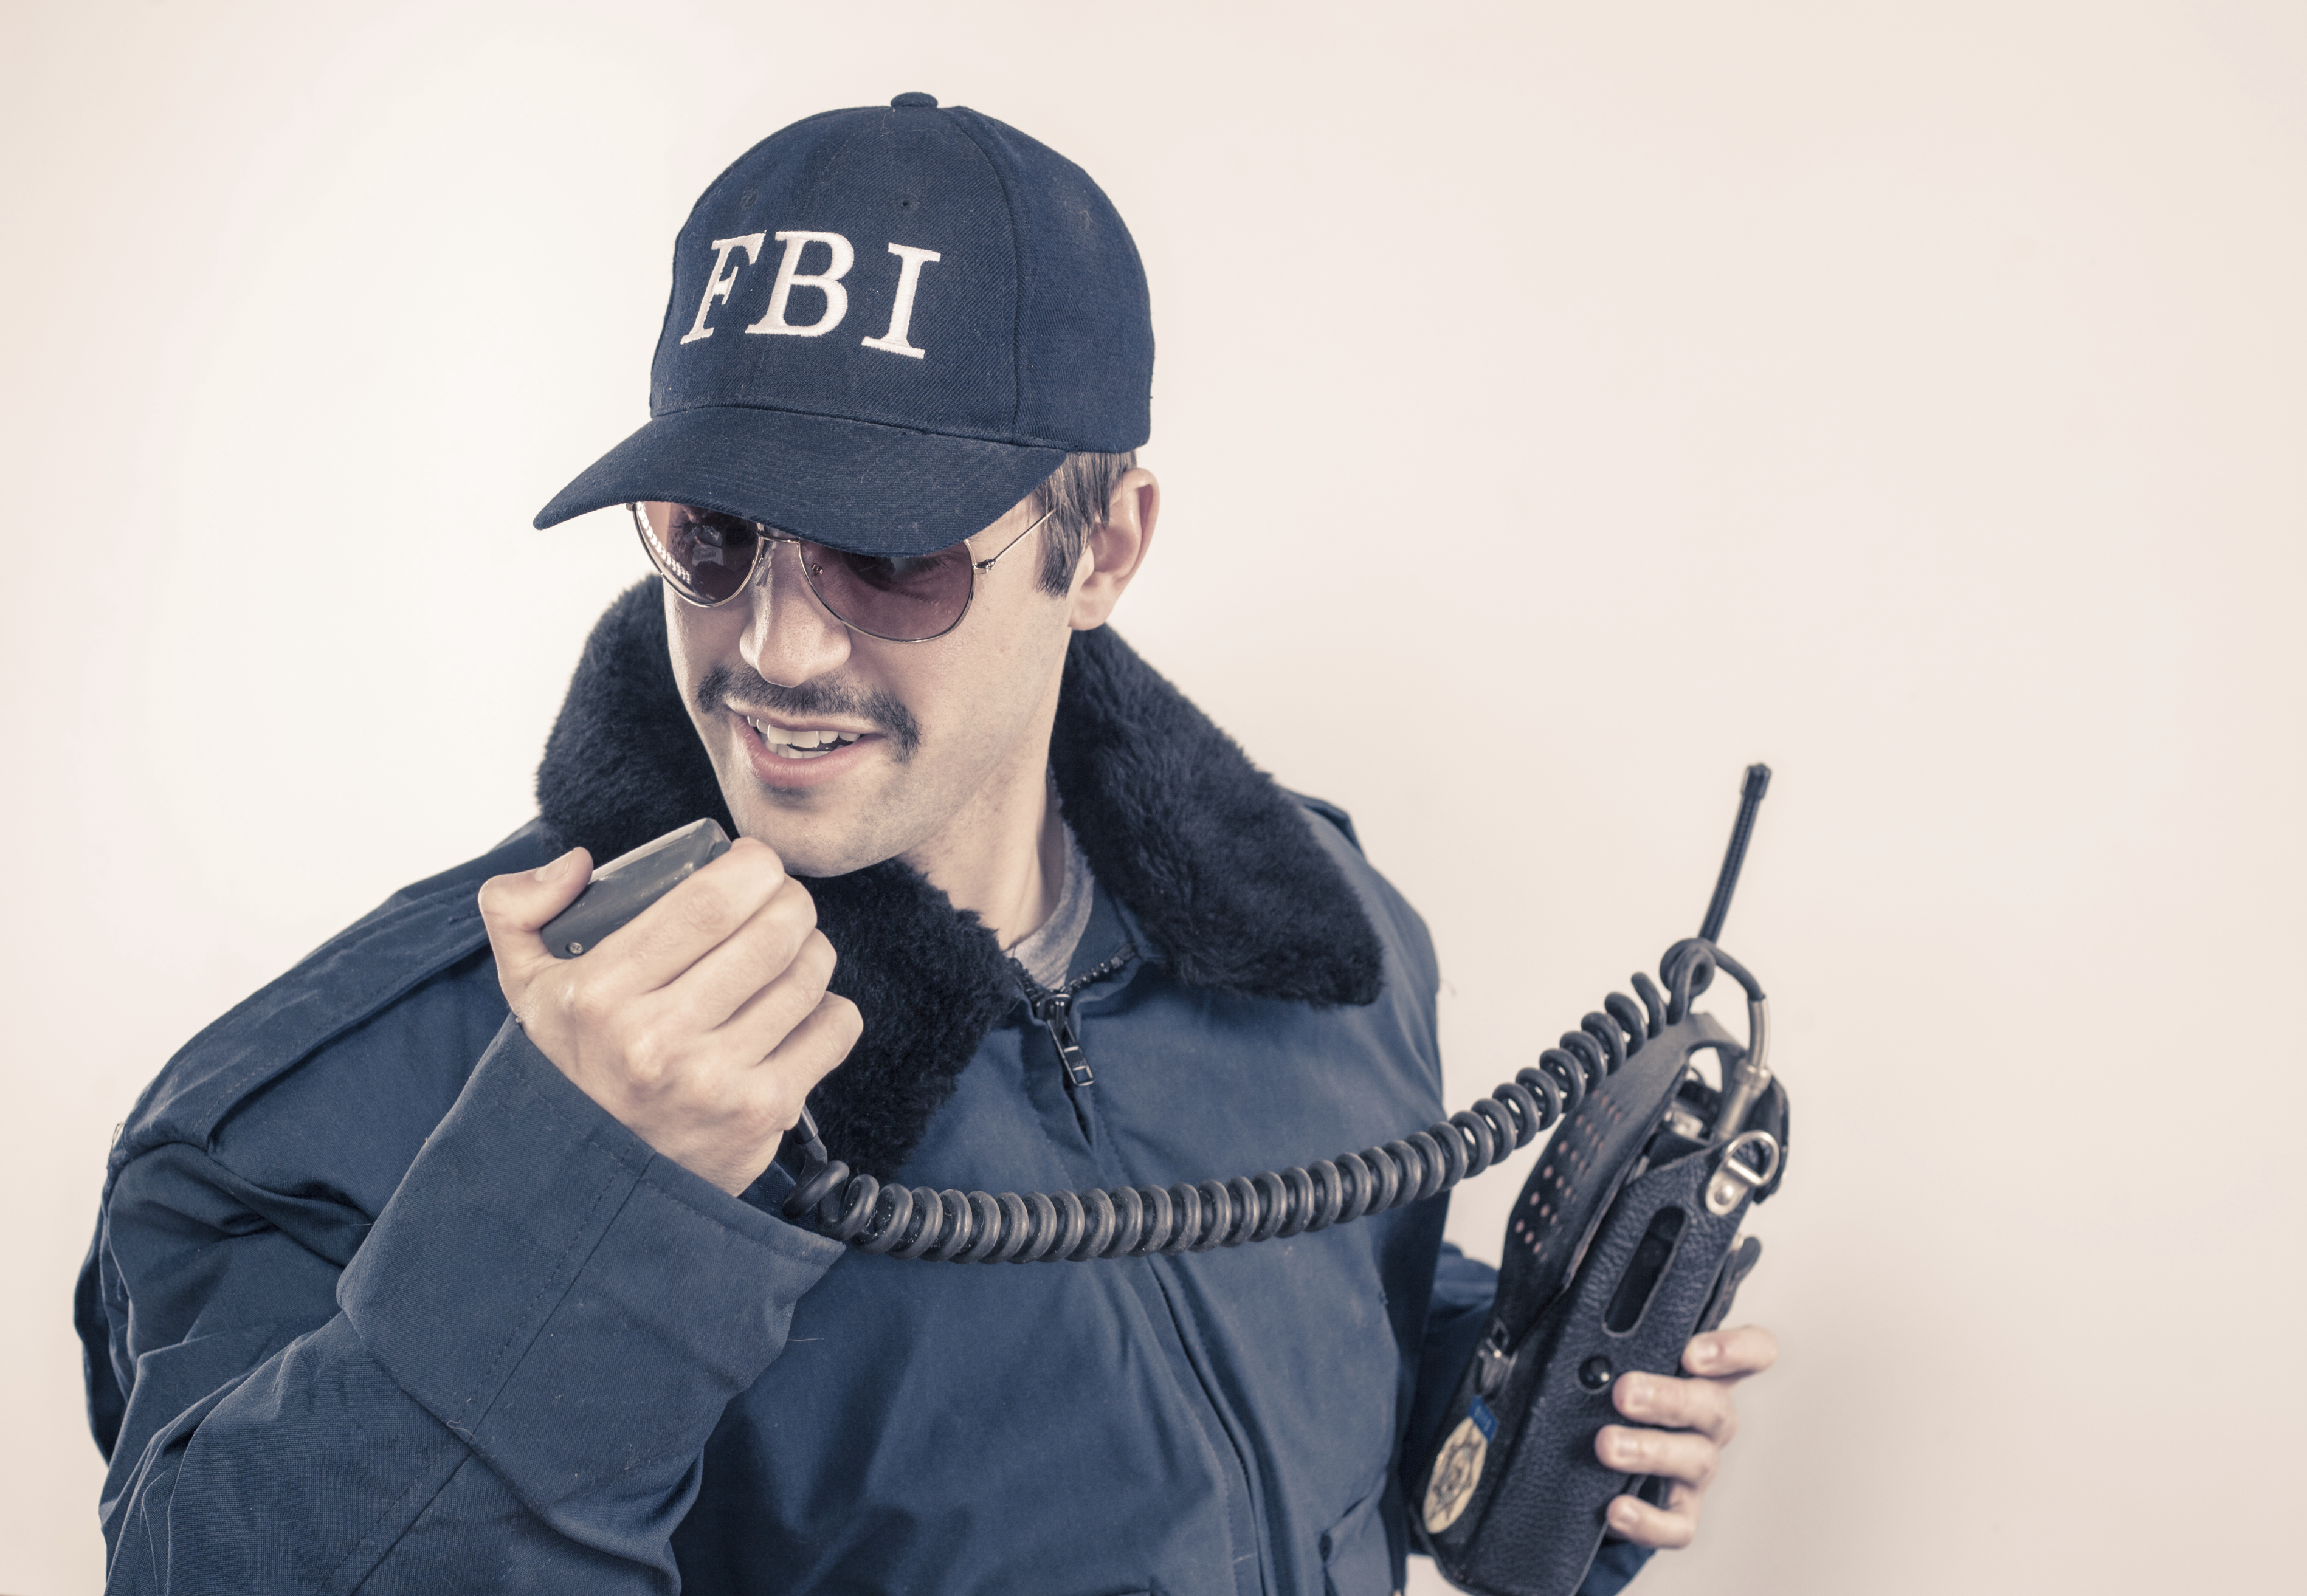 The FBI Is Investigating Your Home?! Nope, That Was Just A Bad Sales Call